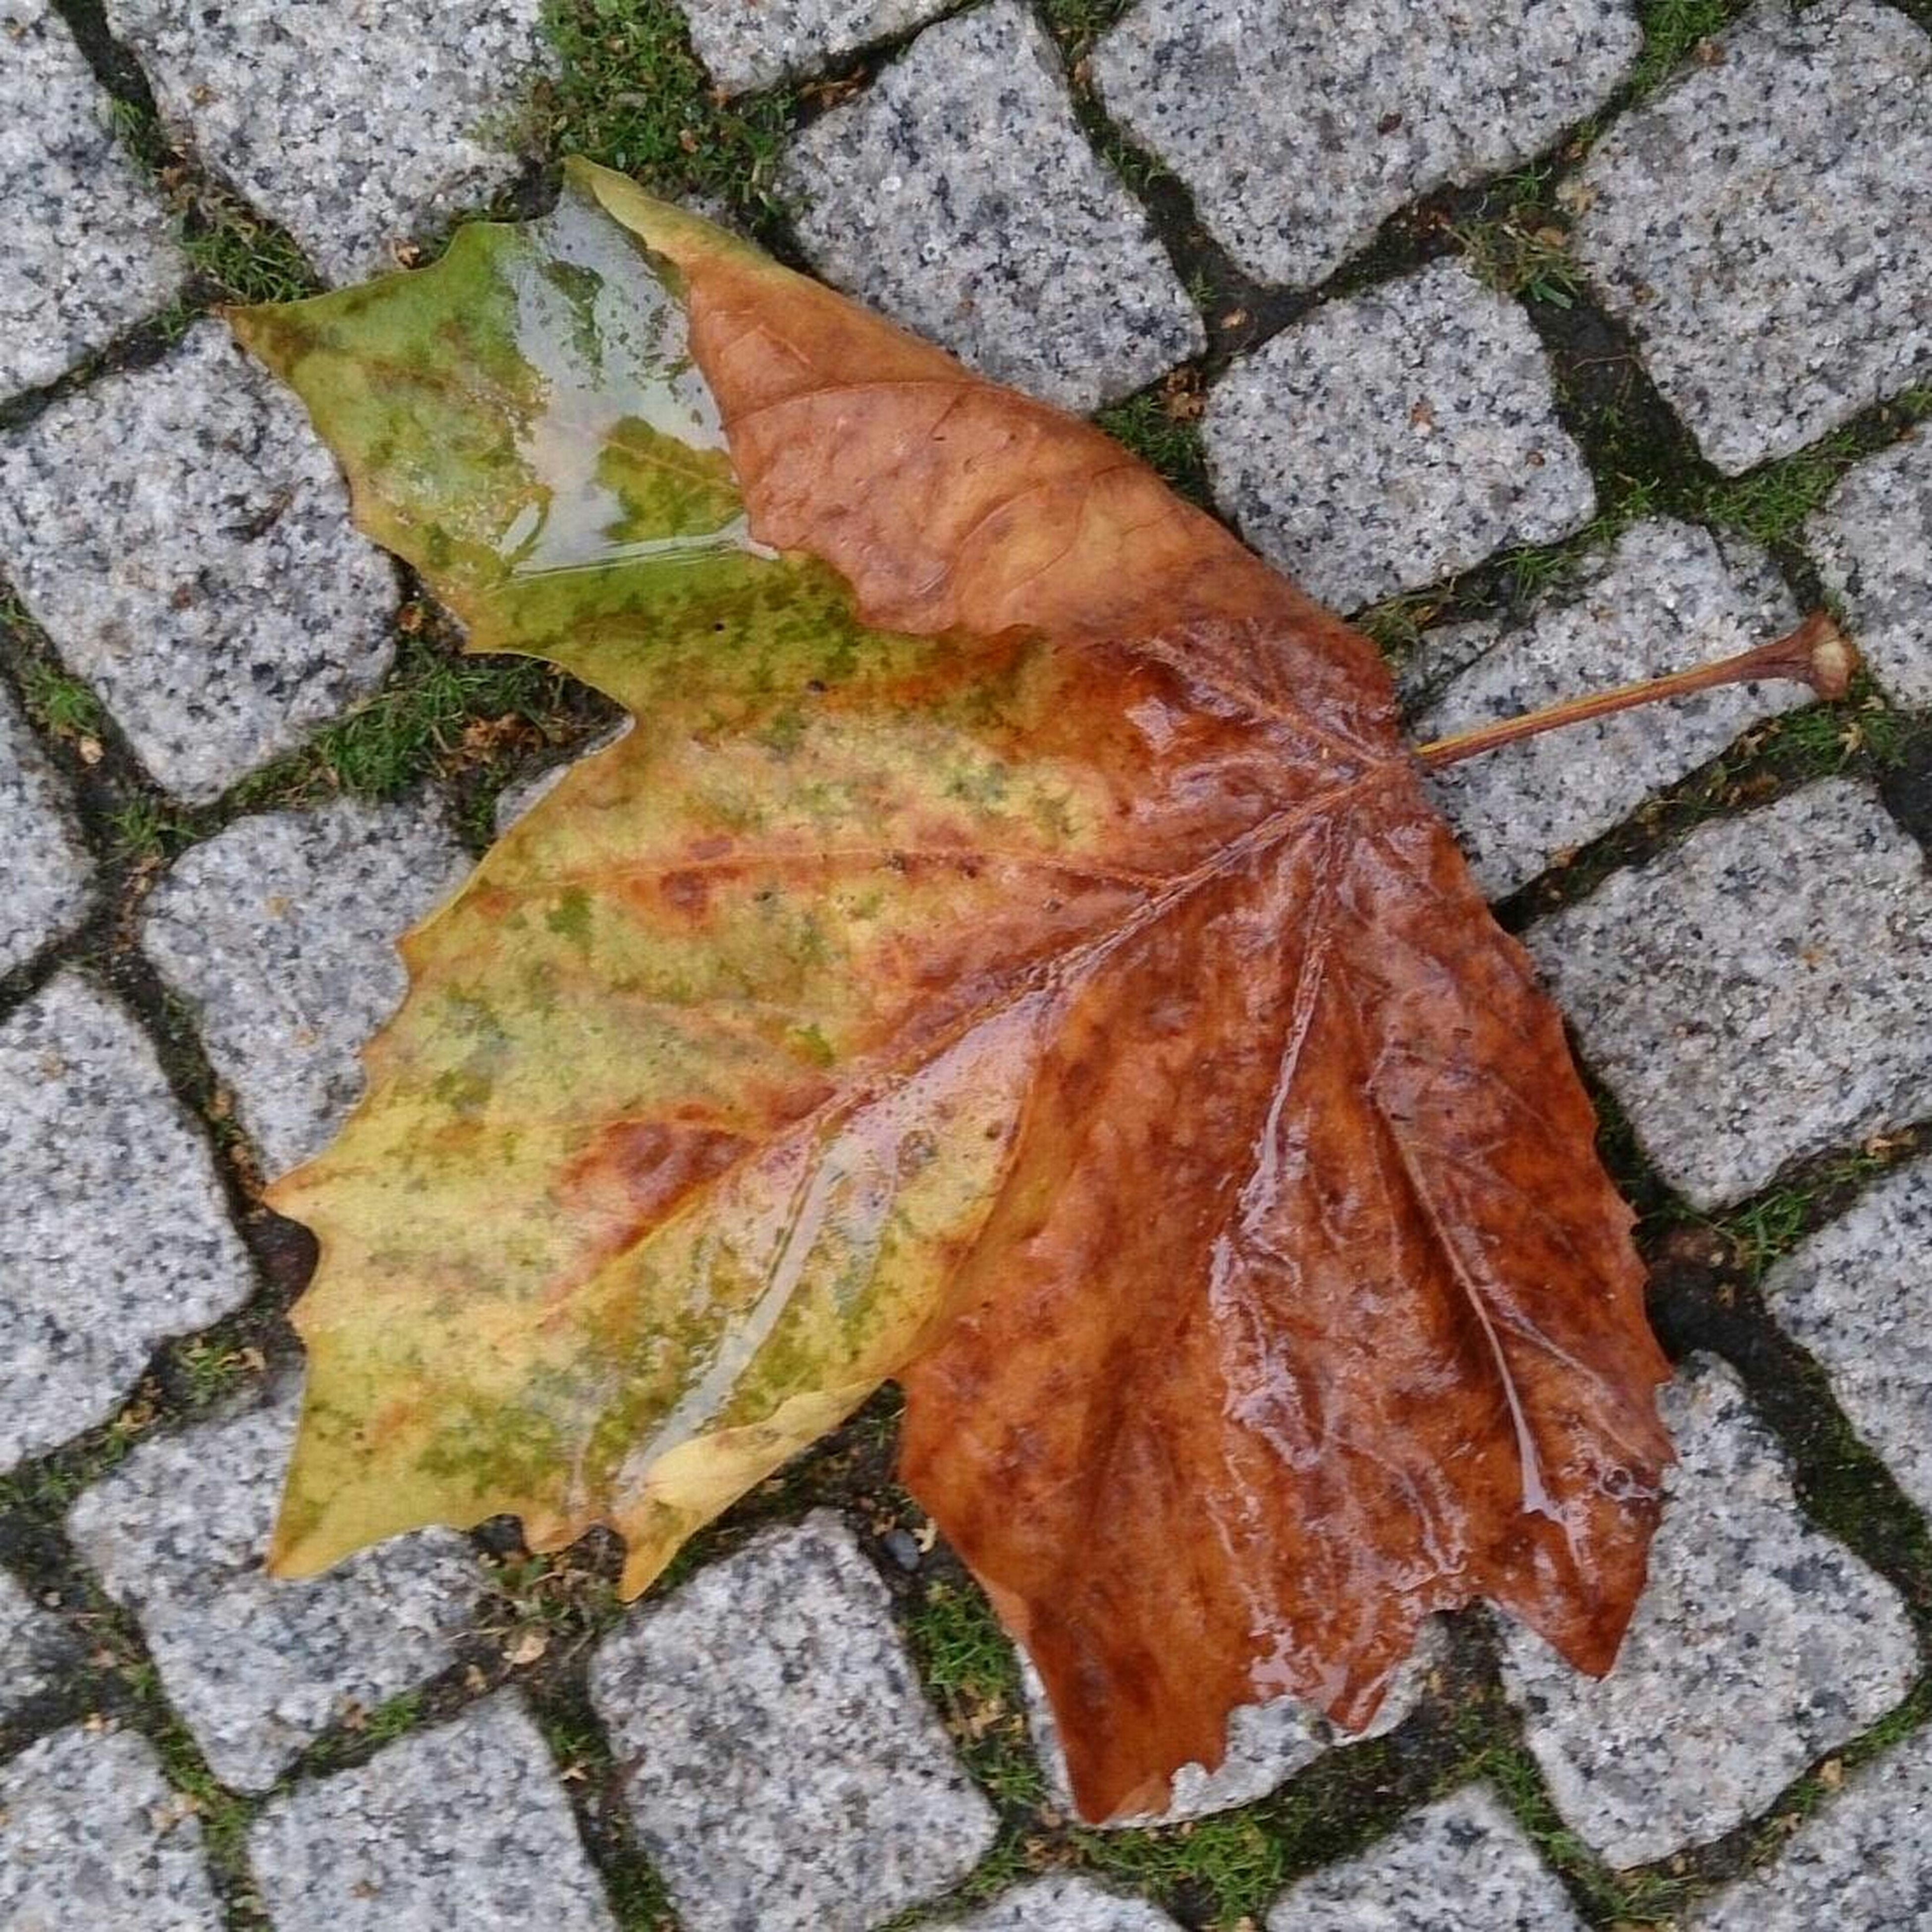 leaf, autumn, high angle view, dry, change, street, season, leaves, fallen, close-up, textured, nature, day, outdoors, ground, directly above, no people, natural pattern, cobblestone, wet